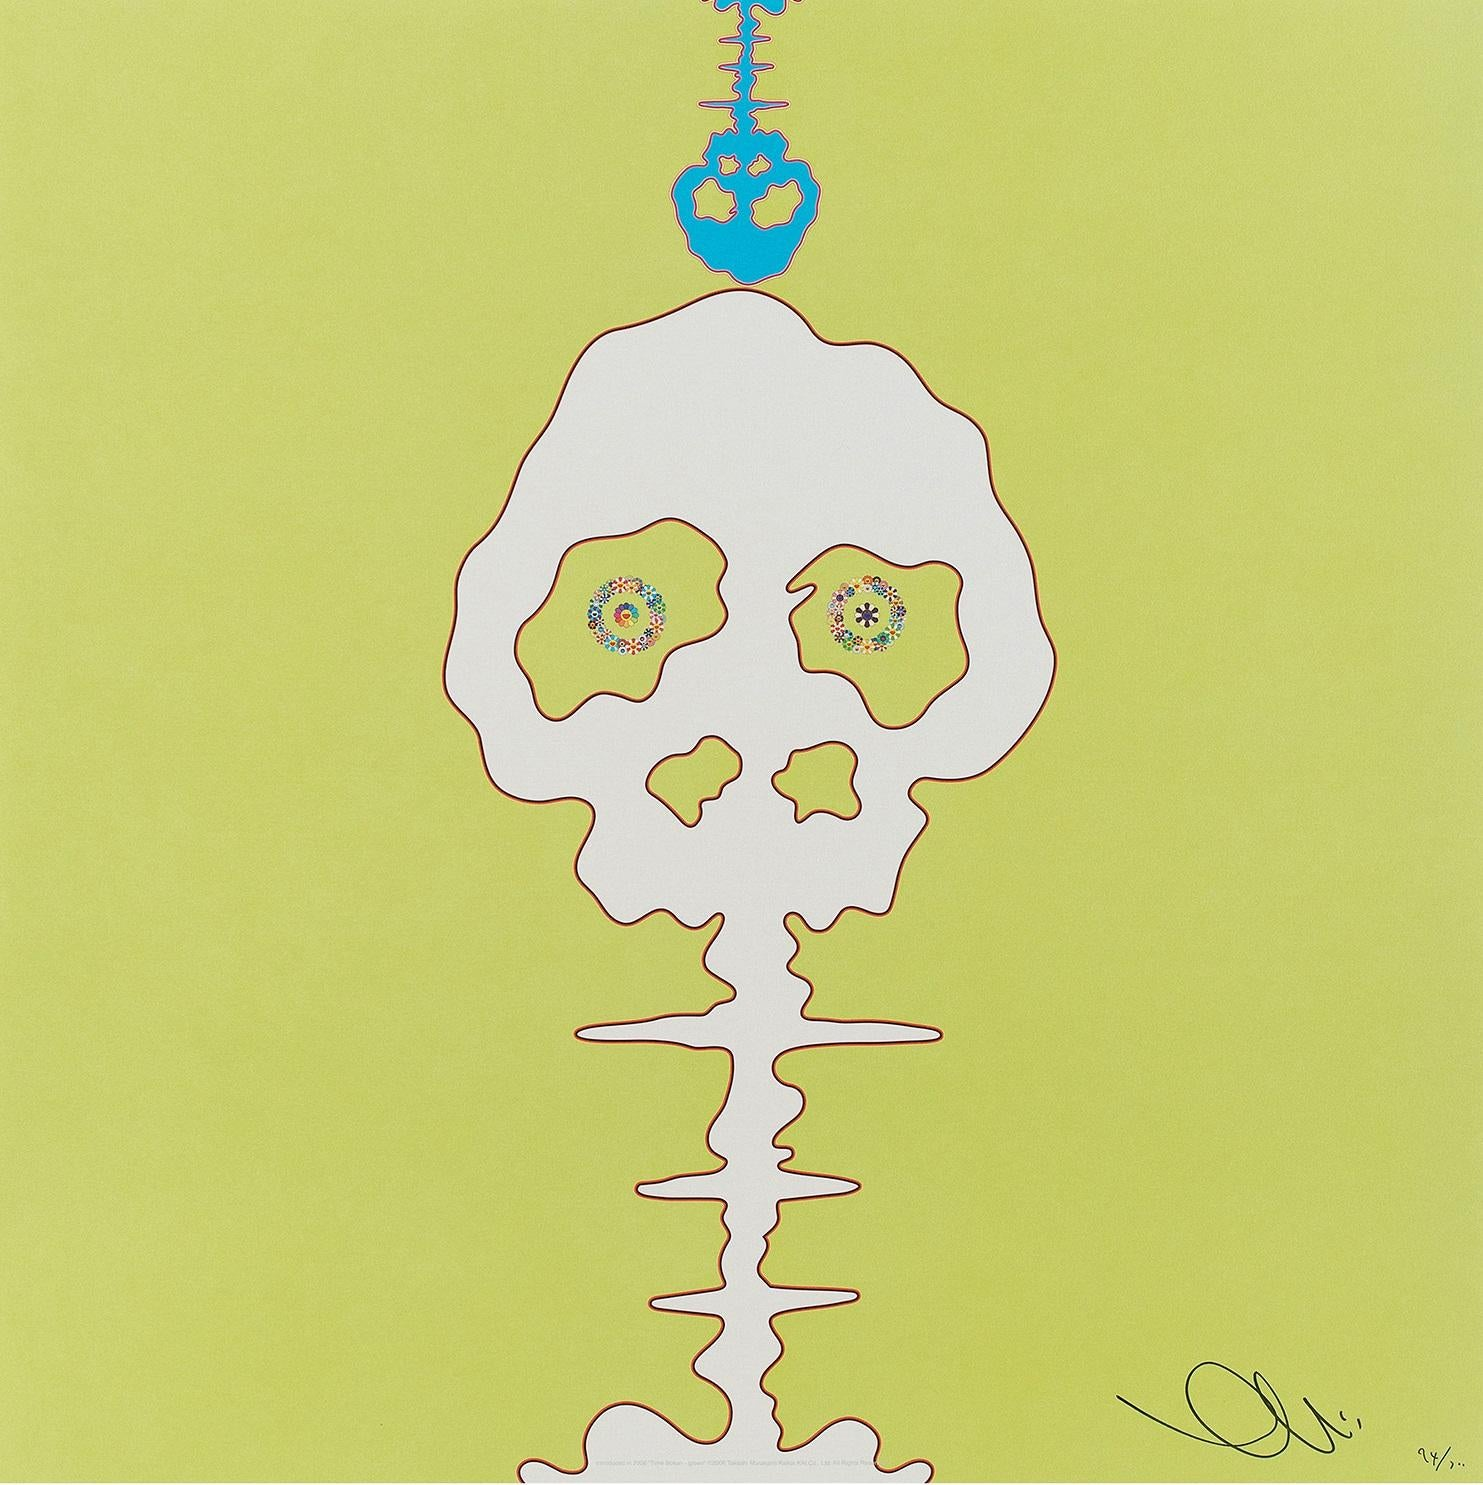 Introduced in 2006 Time Bokan Green. Limited Edition (print) by Murakami signed